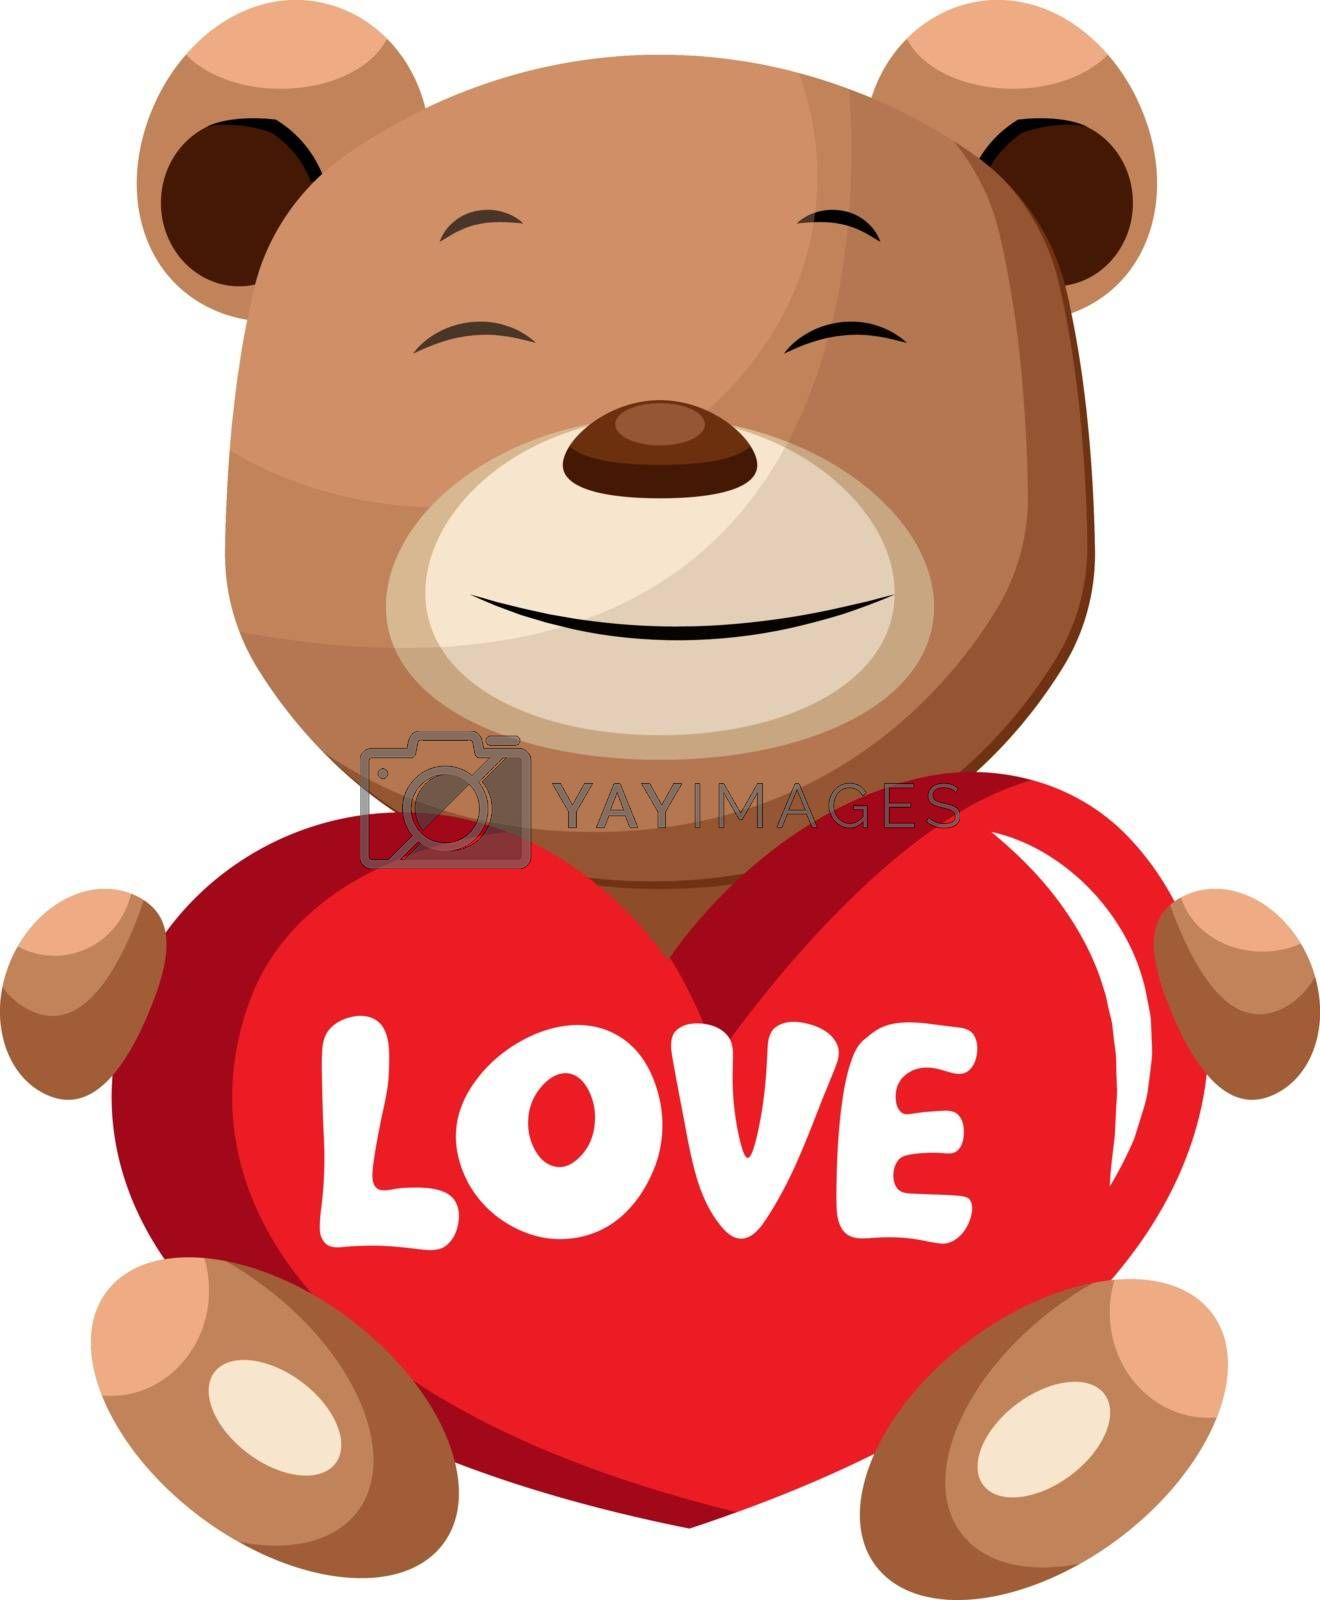 Royalty free image of Brown bear holding heart that says love illustration vector on w by Morphart